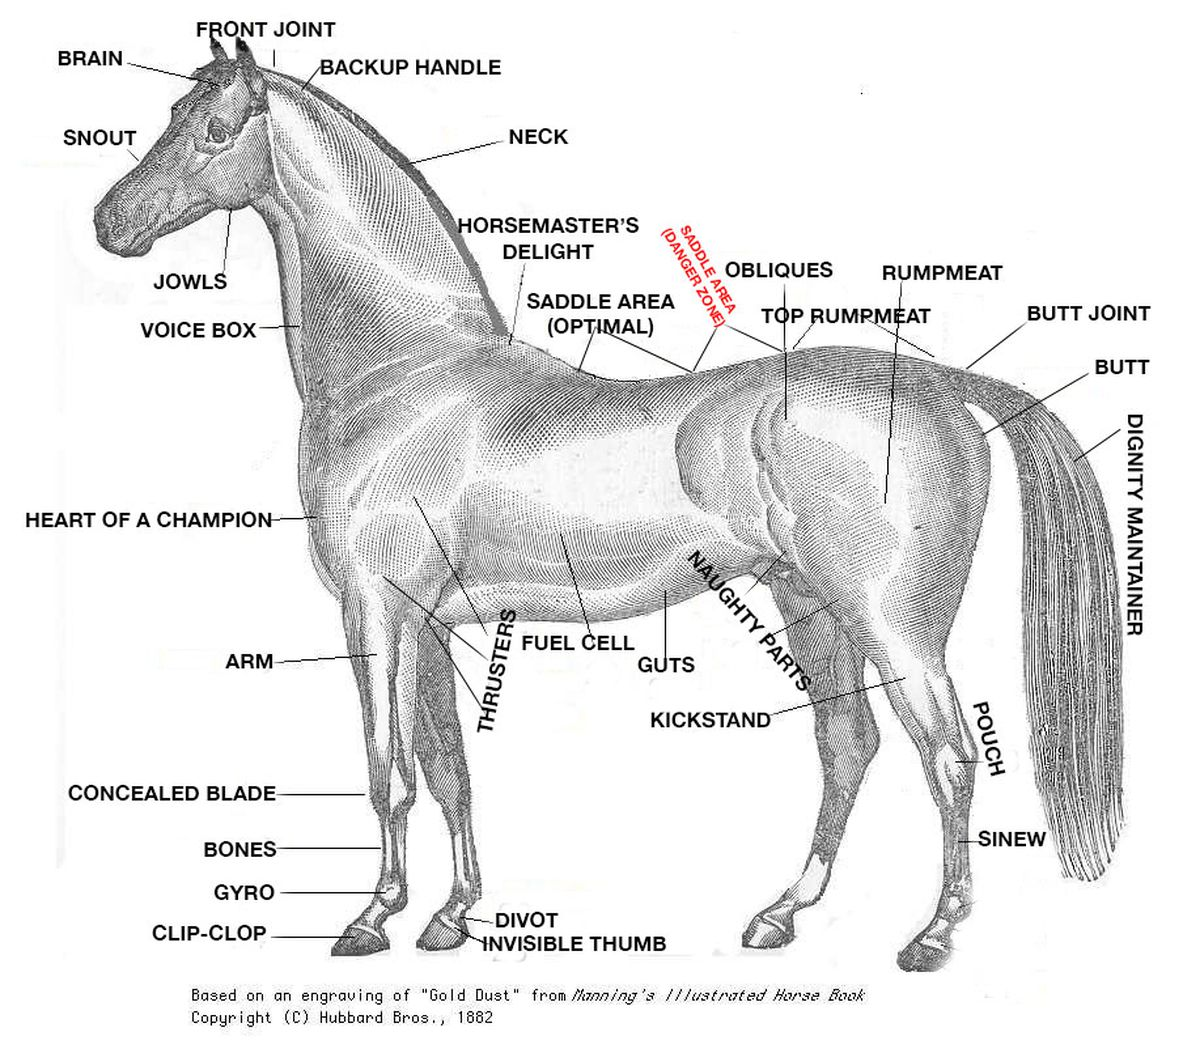 A crash course in horse anatomy for the 2015 Kentucky Derby ...